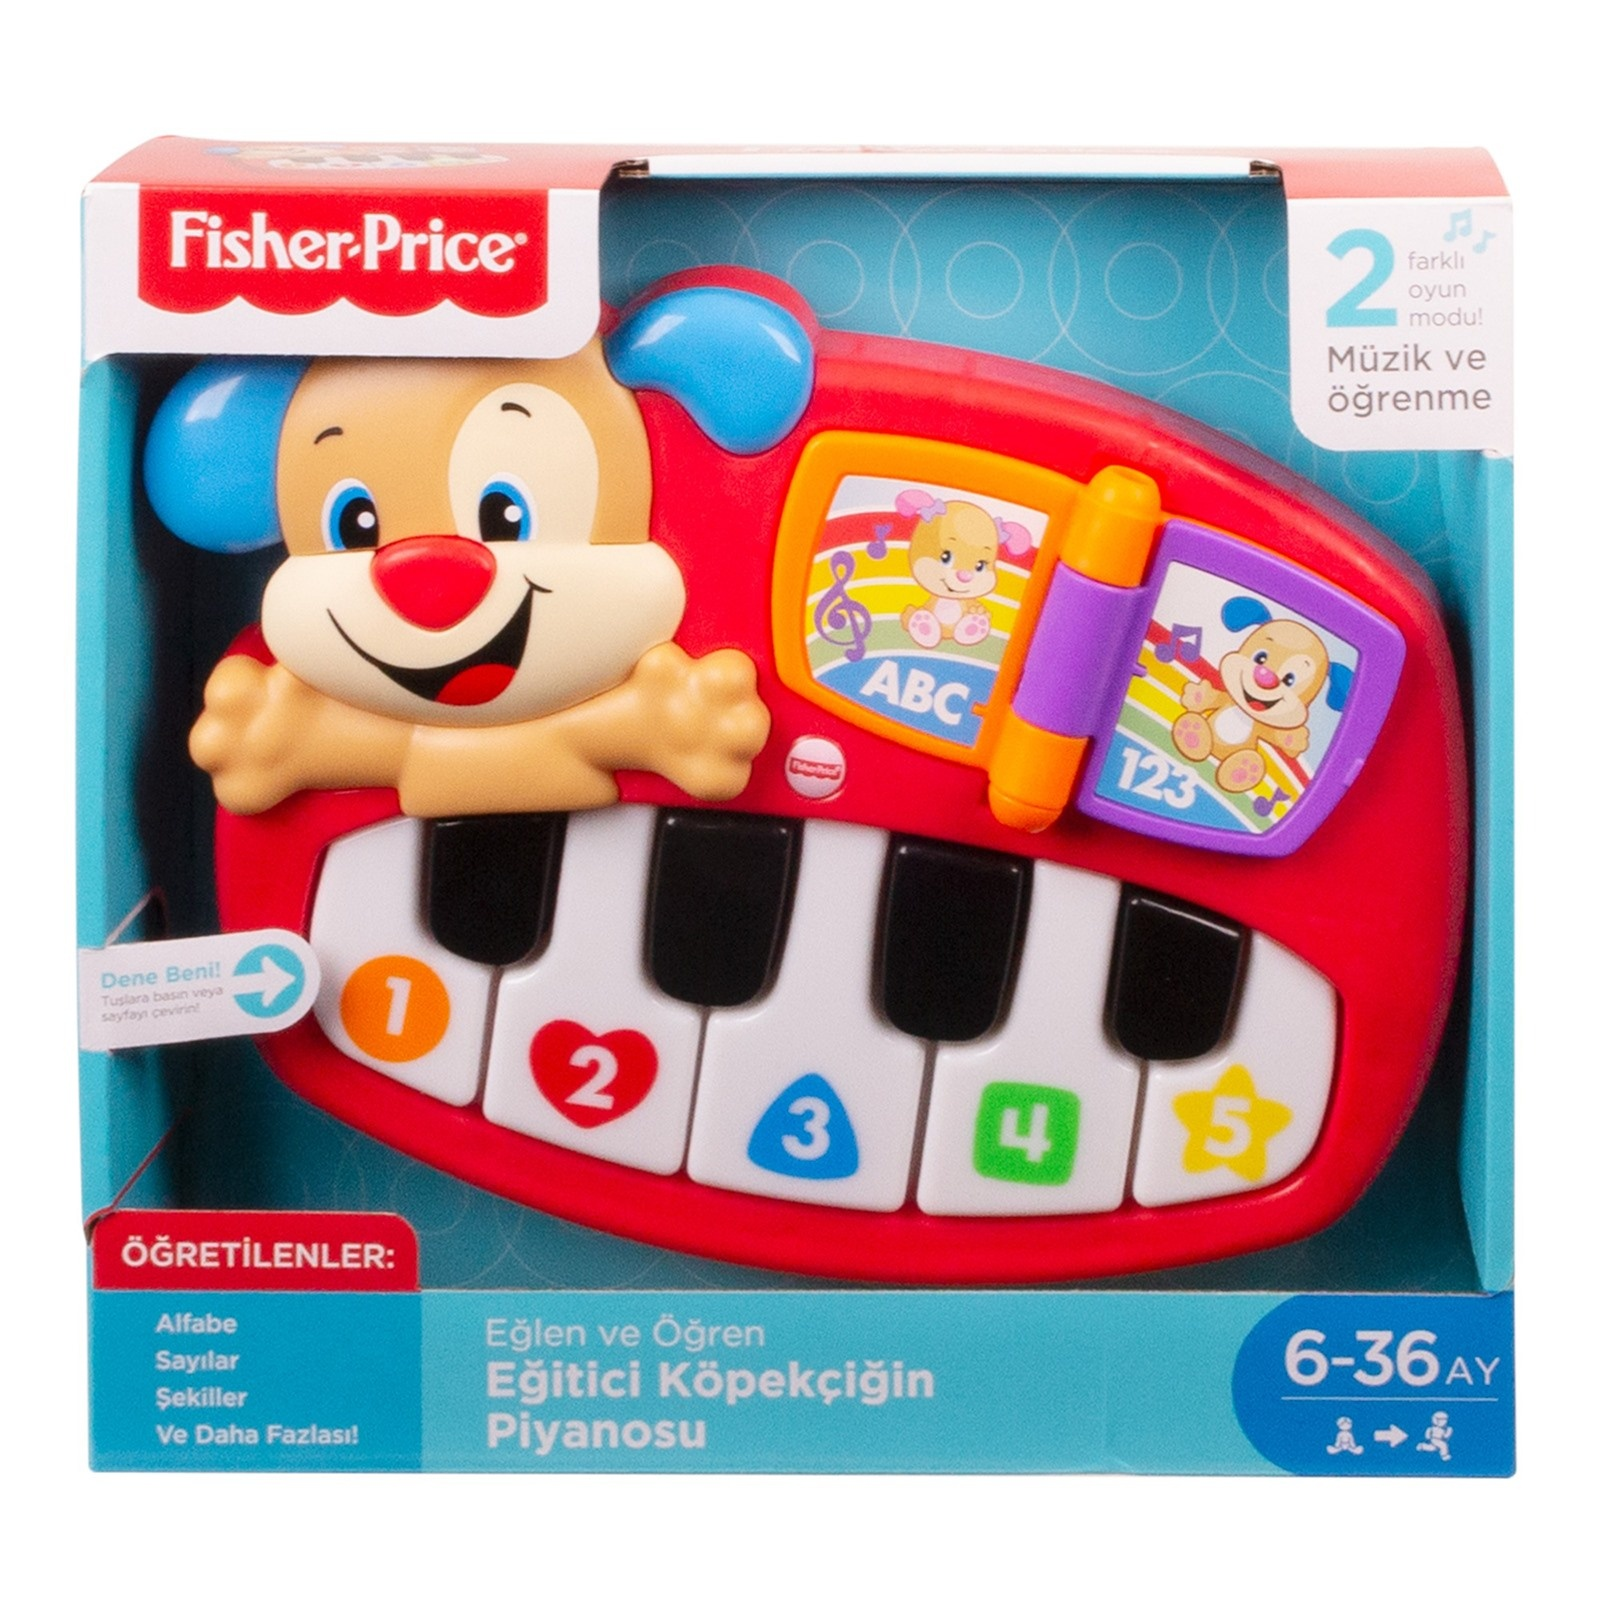 Fisher Price Egitici Kopekcigin Piyanosu Turkce